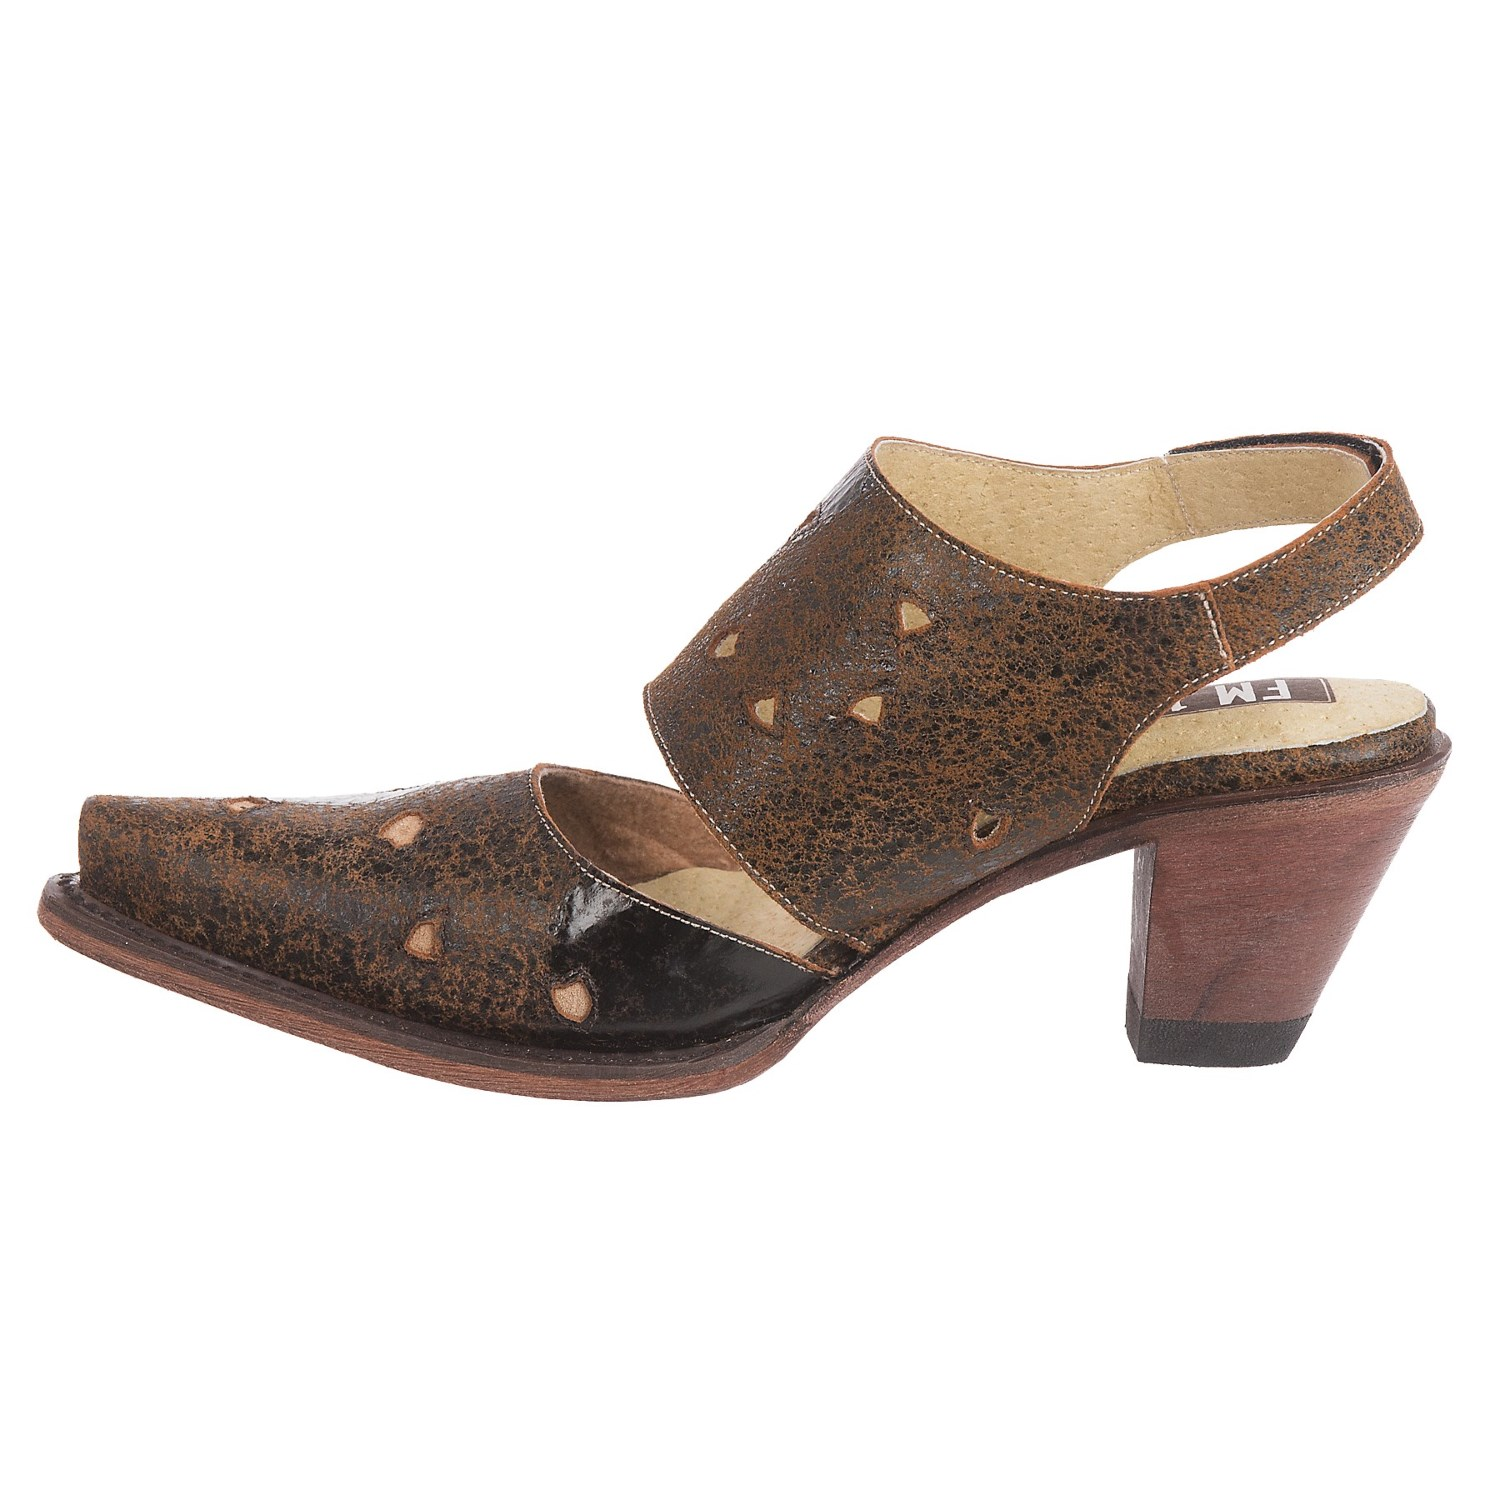 FM 1101 Sunny Heeled Mary Jane Shoes (For Women)